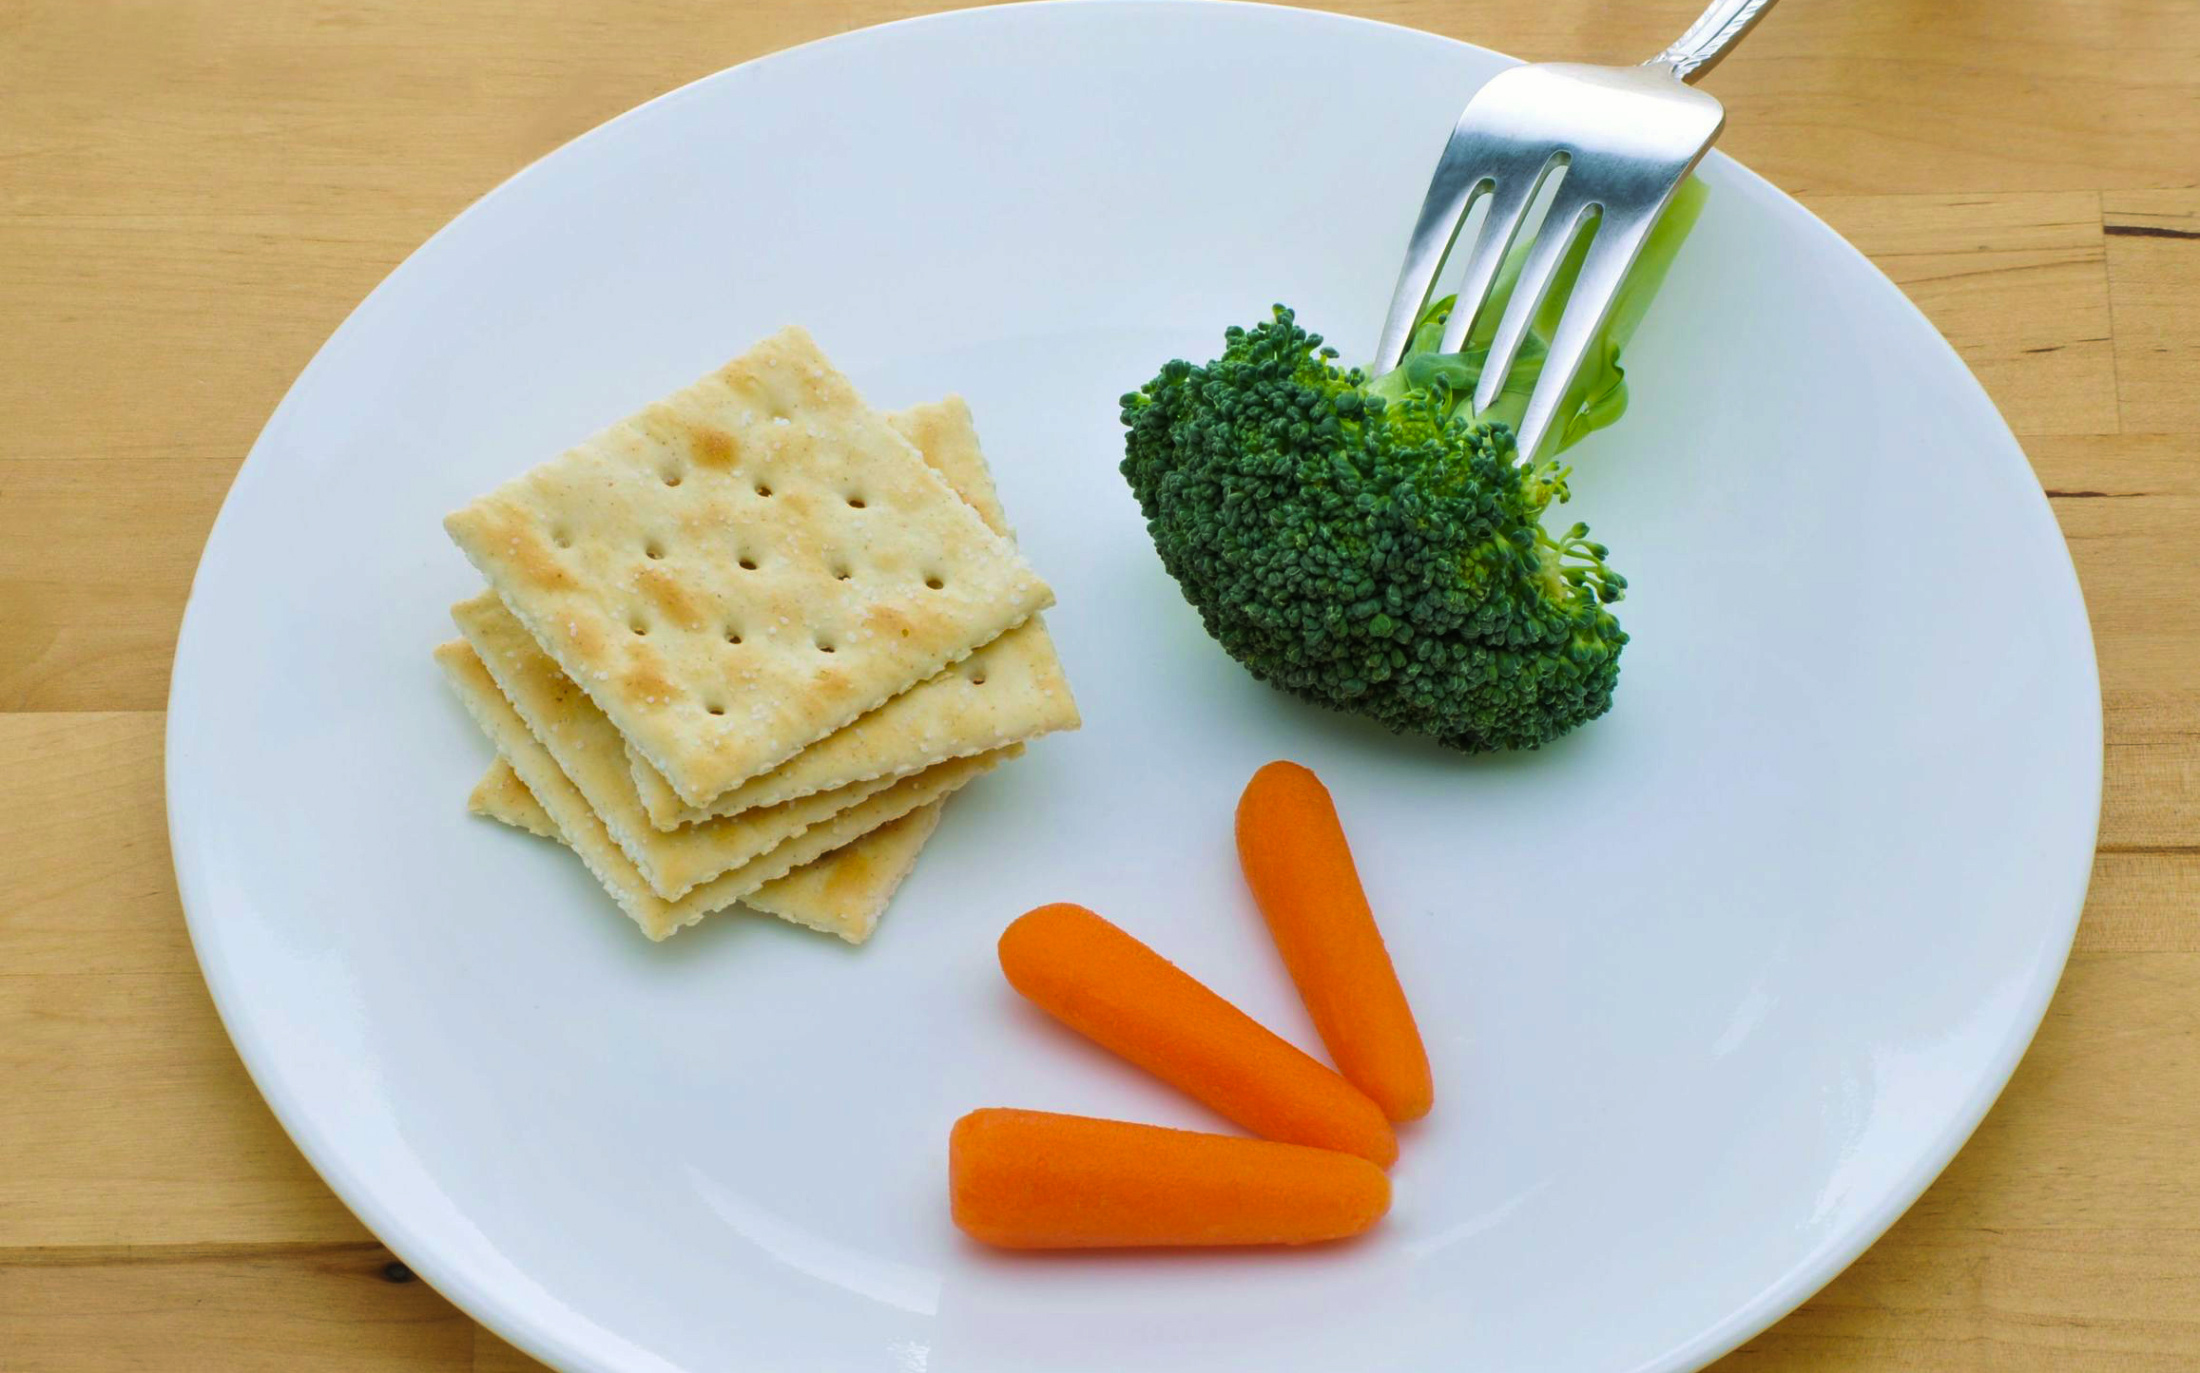 Rittenhouse Certified Fitness Trainer Tip: Eating too little slows weight loss